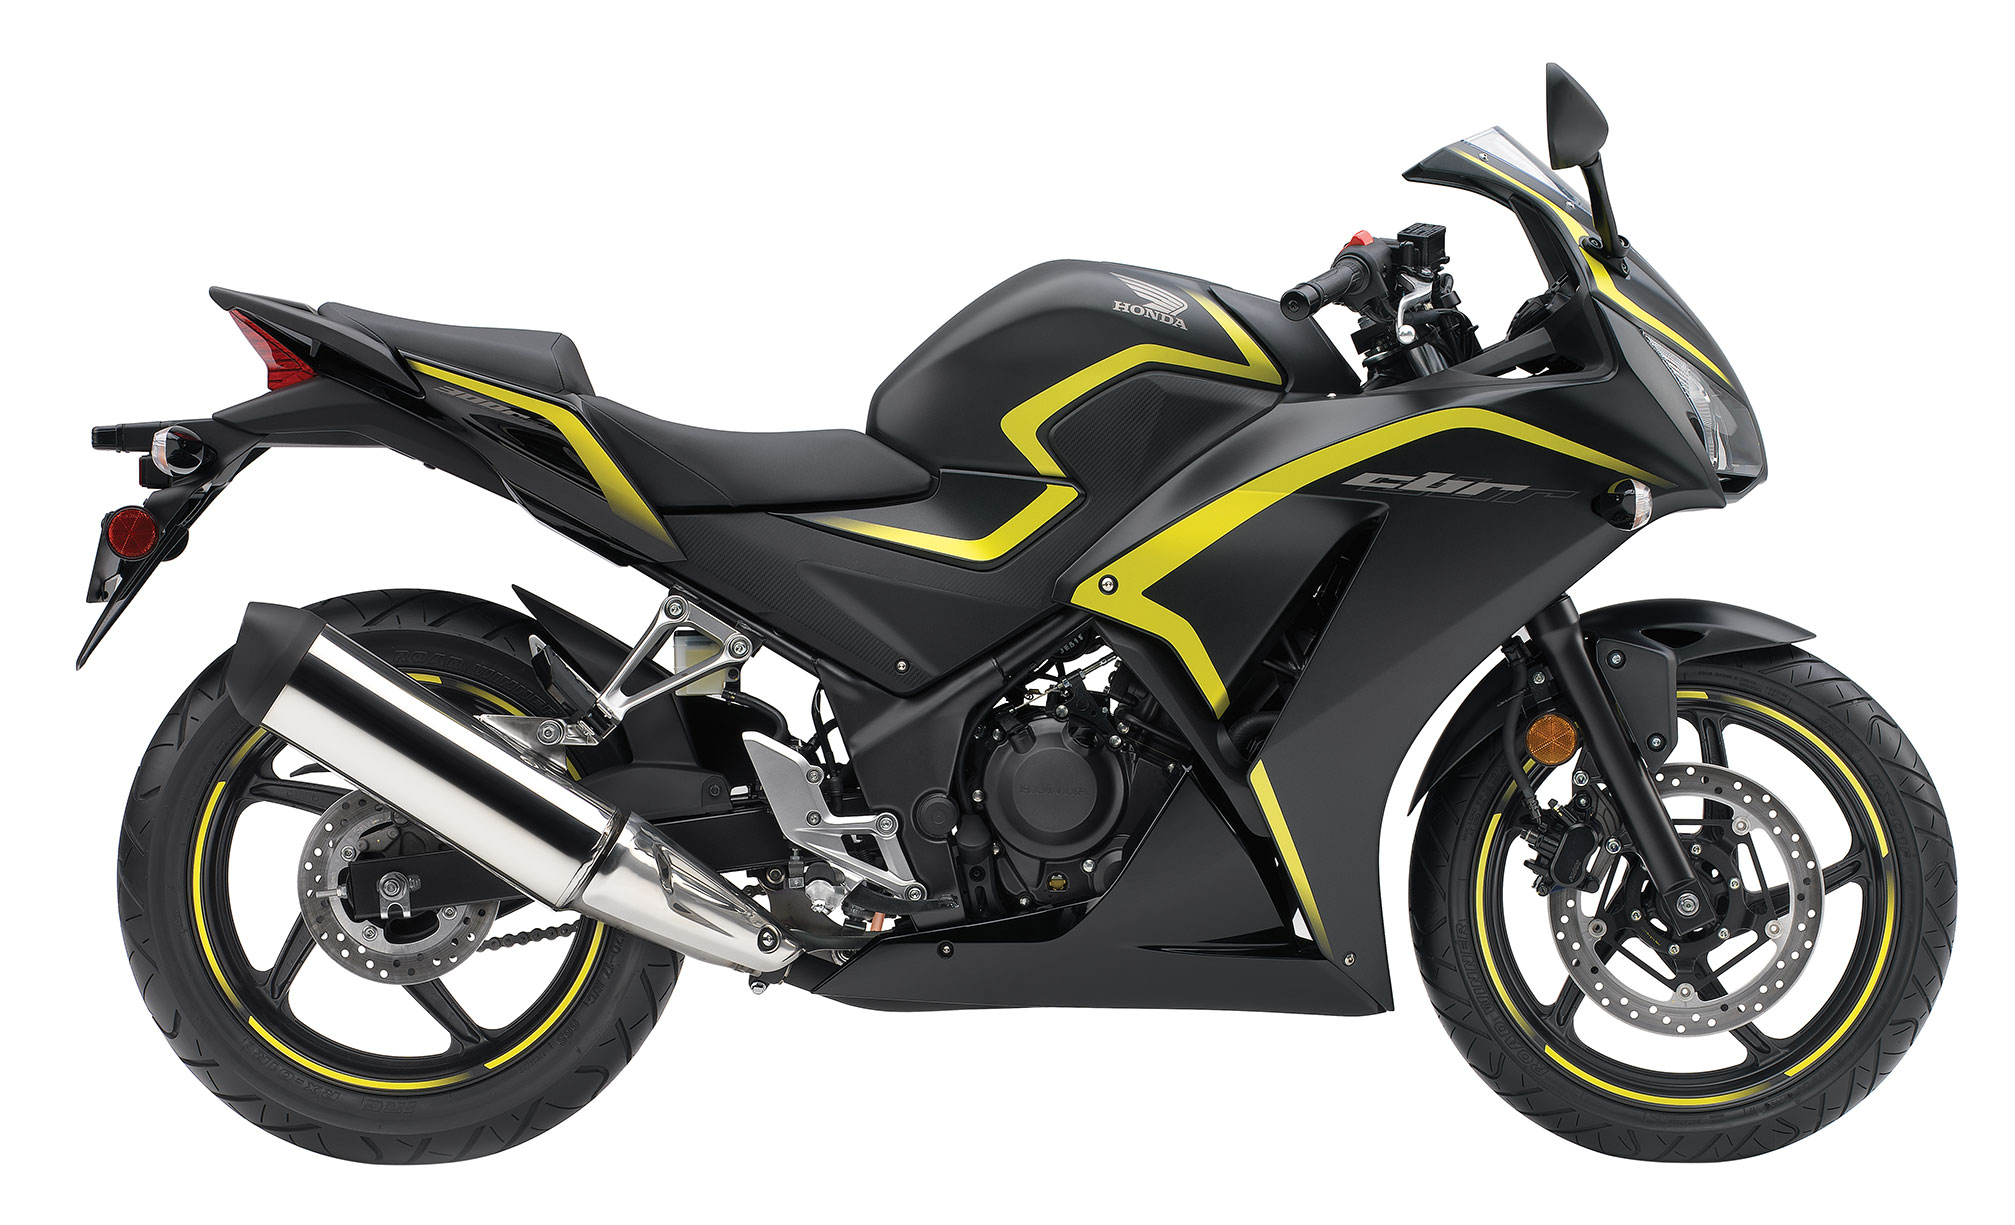 Rumor Honda Cbr300r Coming To India By March 2015